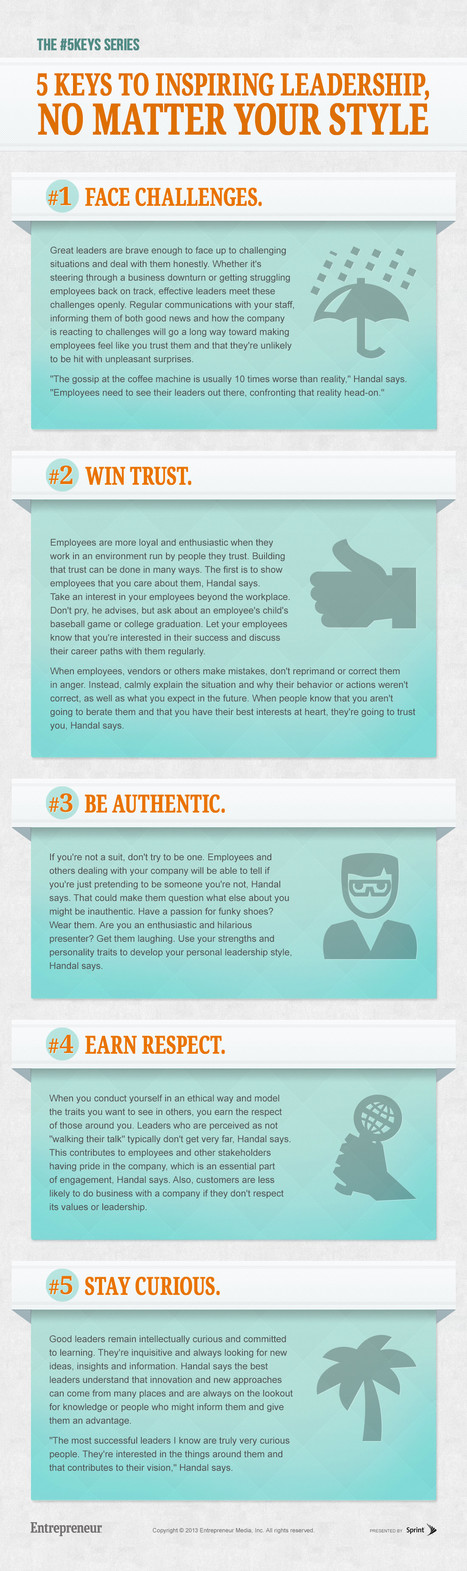 5 Keys to Inspiring Leadership, No Matter Your Style [Infographic] | The Slothful Cybrarian | Scoop.it